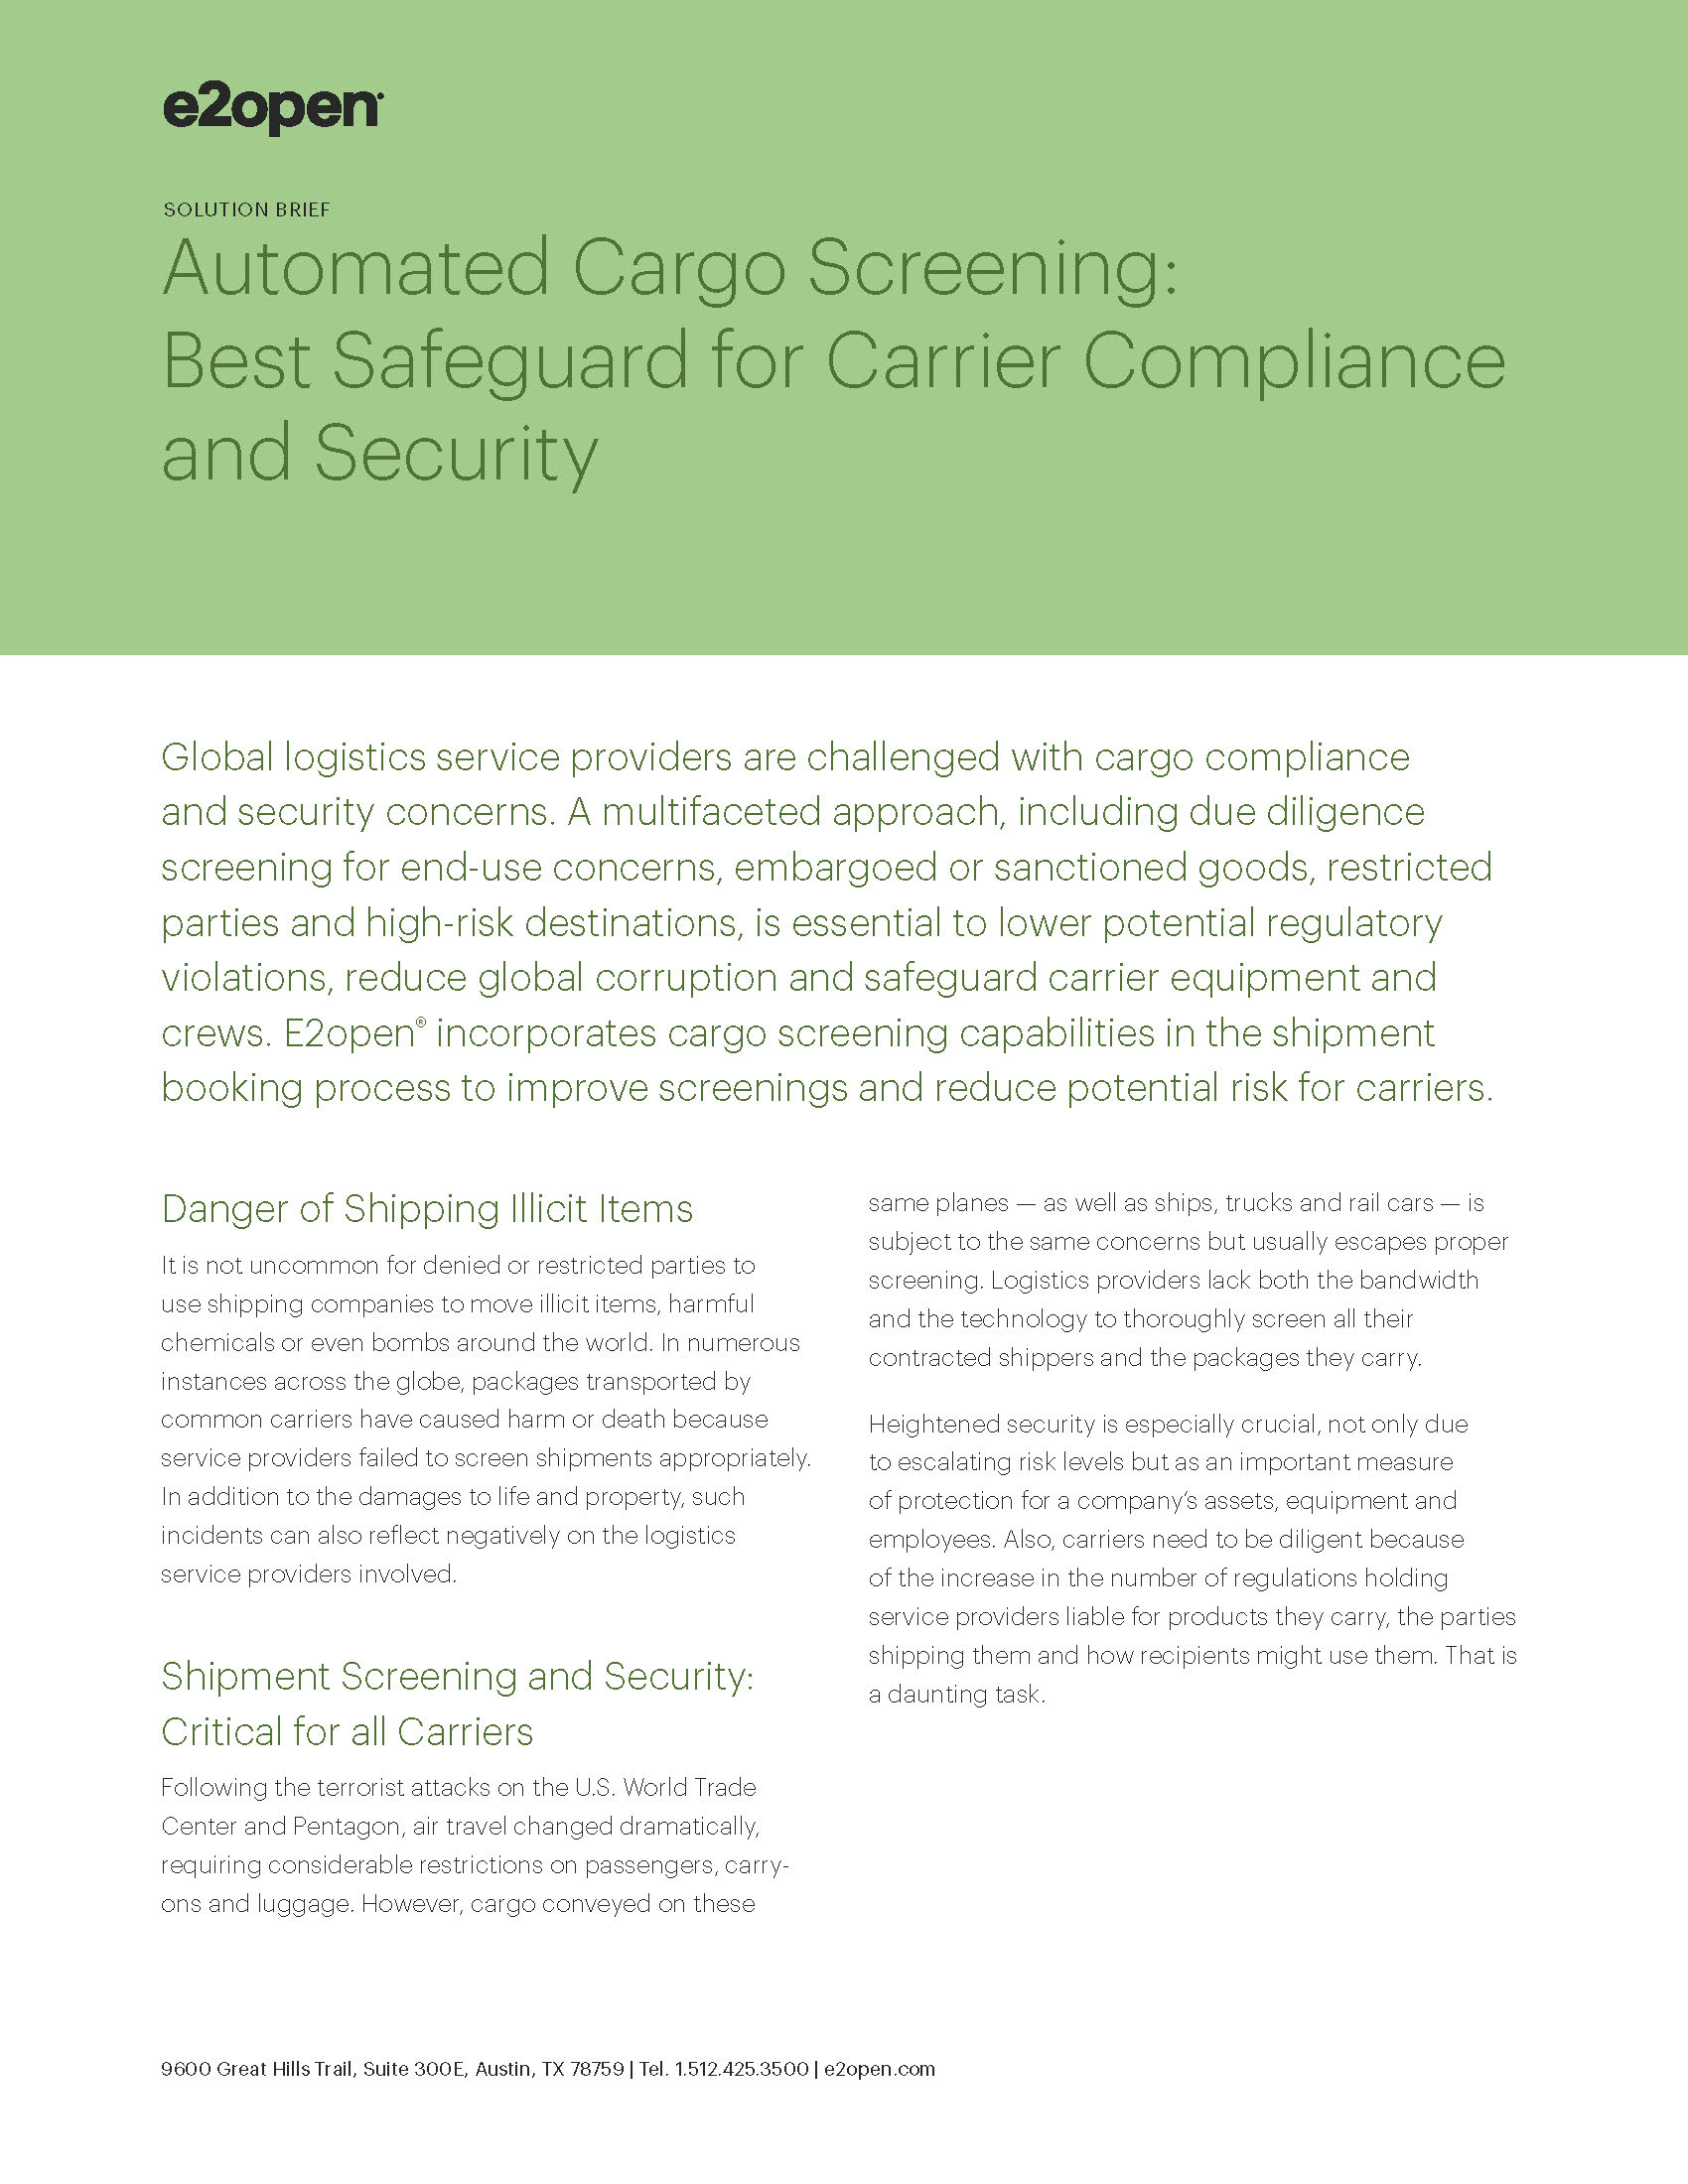 Automated Cargo Screening: Best Safeguard for Carrier Compliance